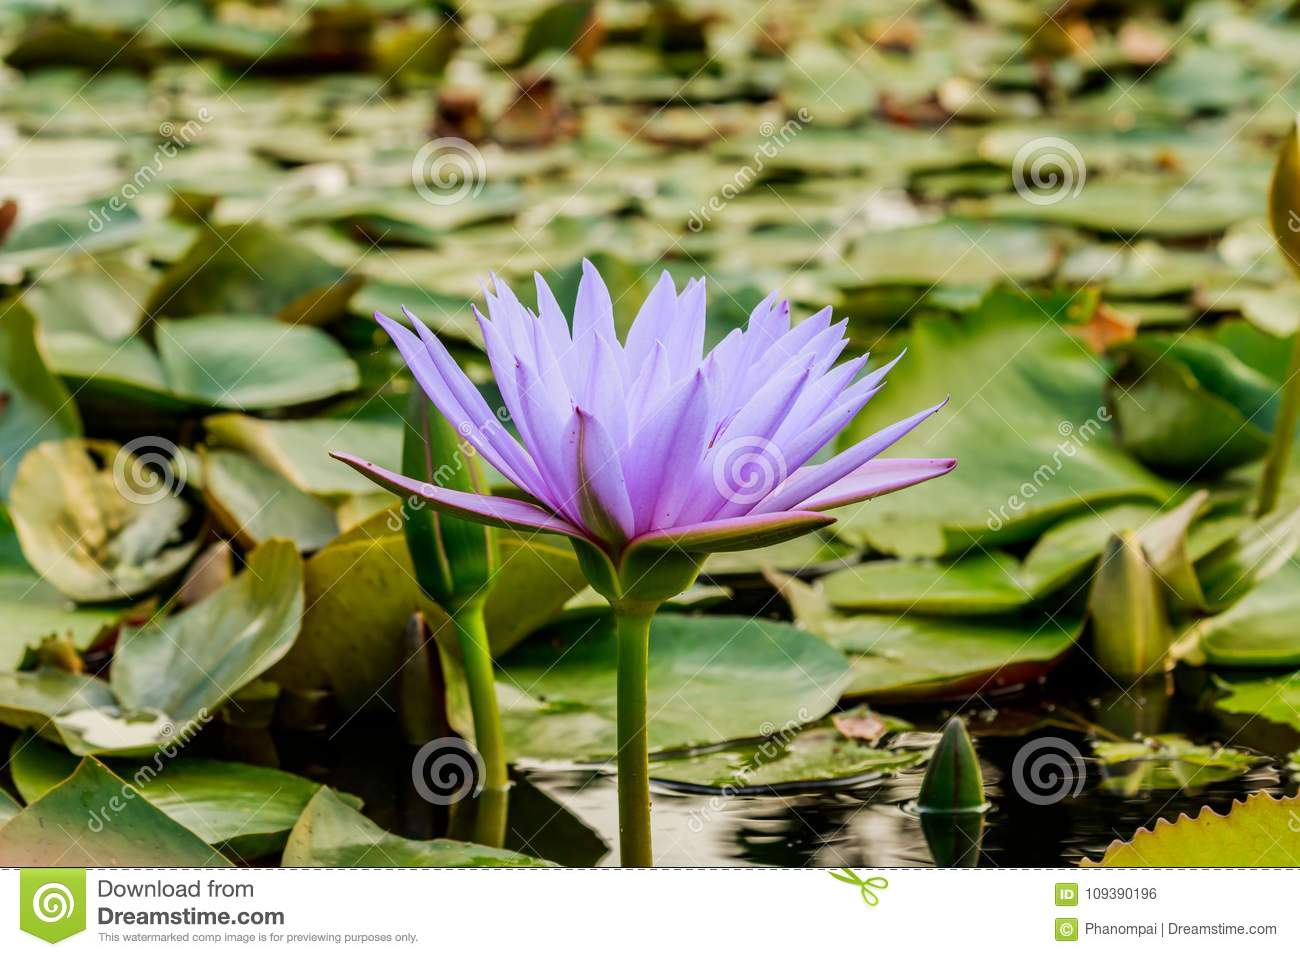 Lotus Flower And Lotus Flower Plants Stock Photo Image Of Beauty